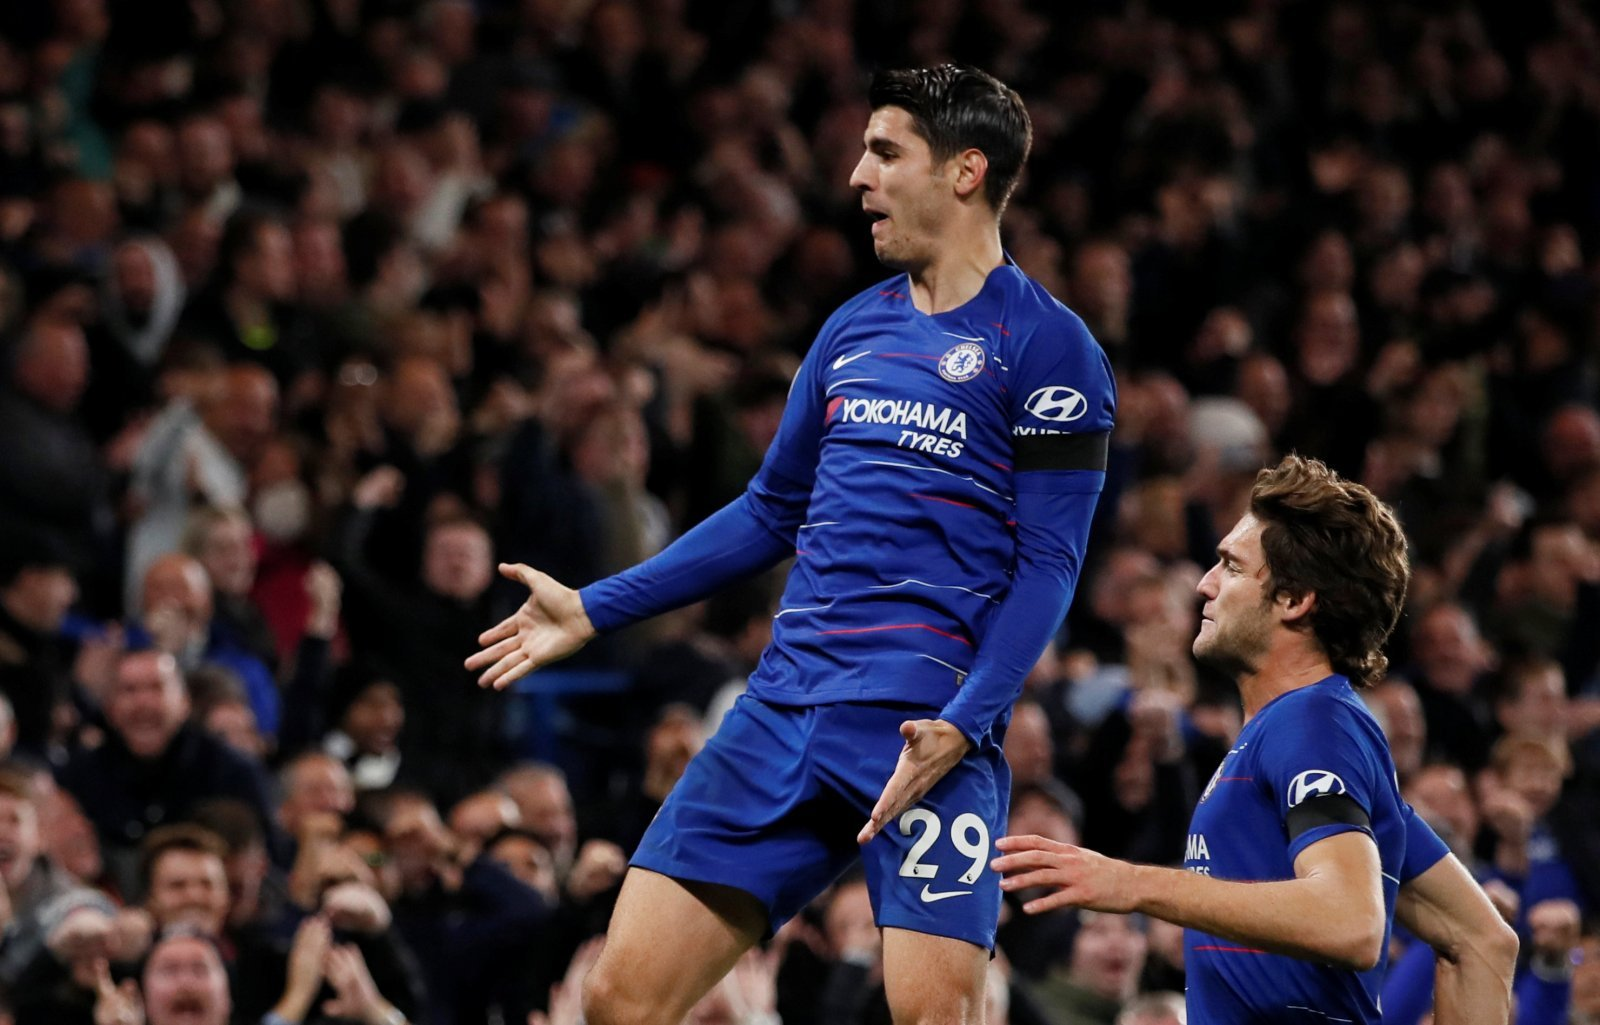 Alvaro Morata is back in form and Chelsea fans are absolutely loving it